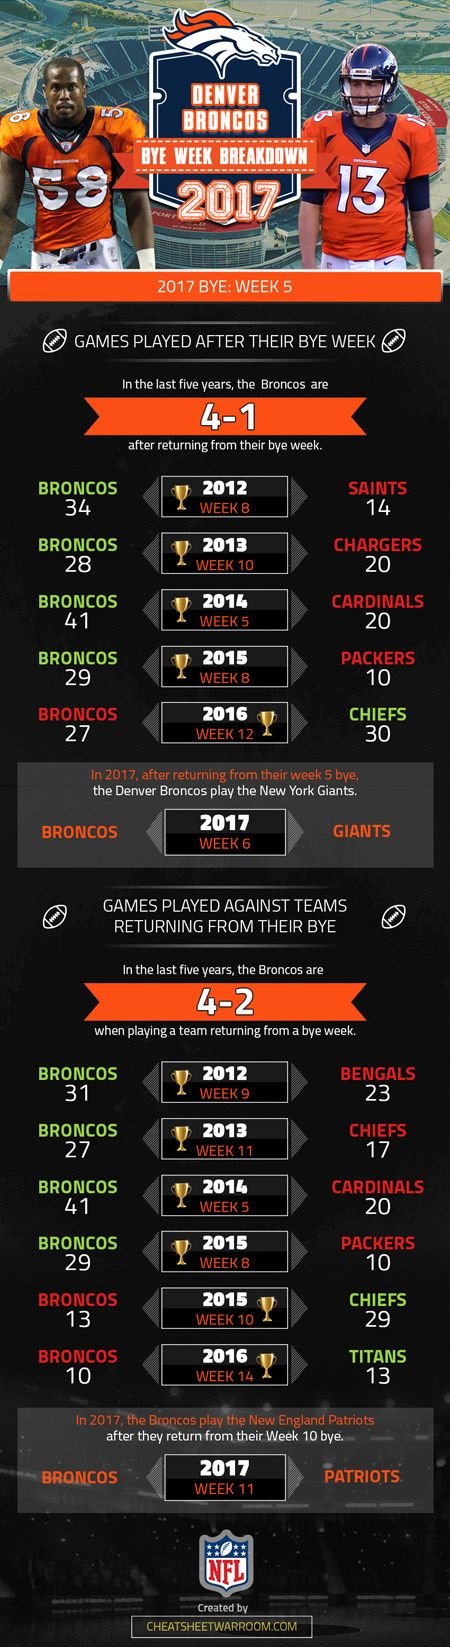 Denver Broncos 2017 bye week information and statistical history.